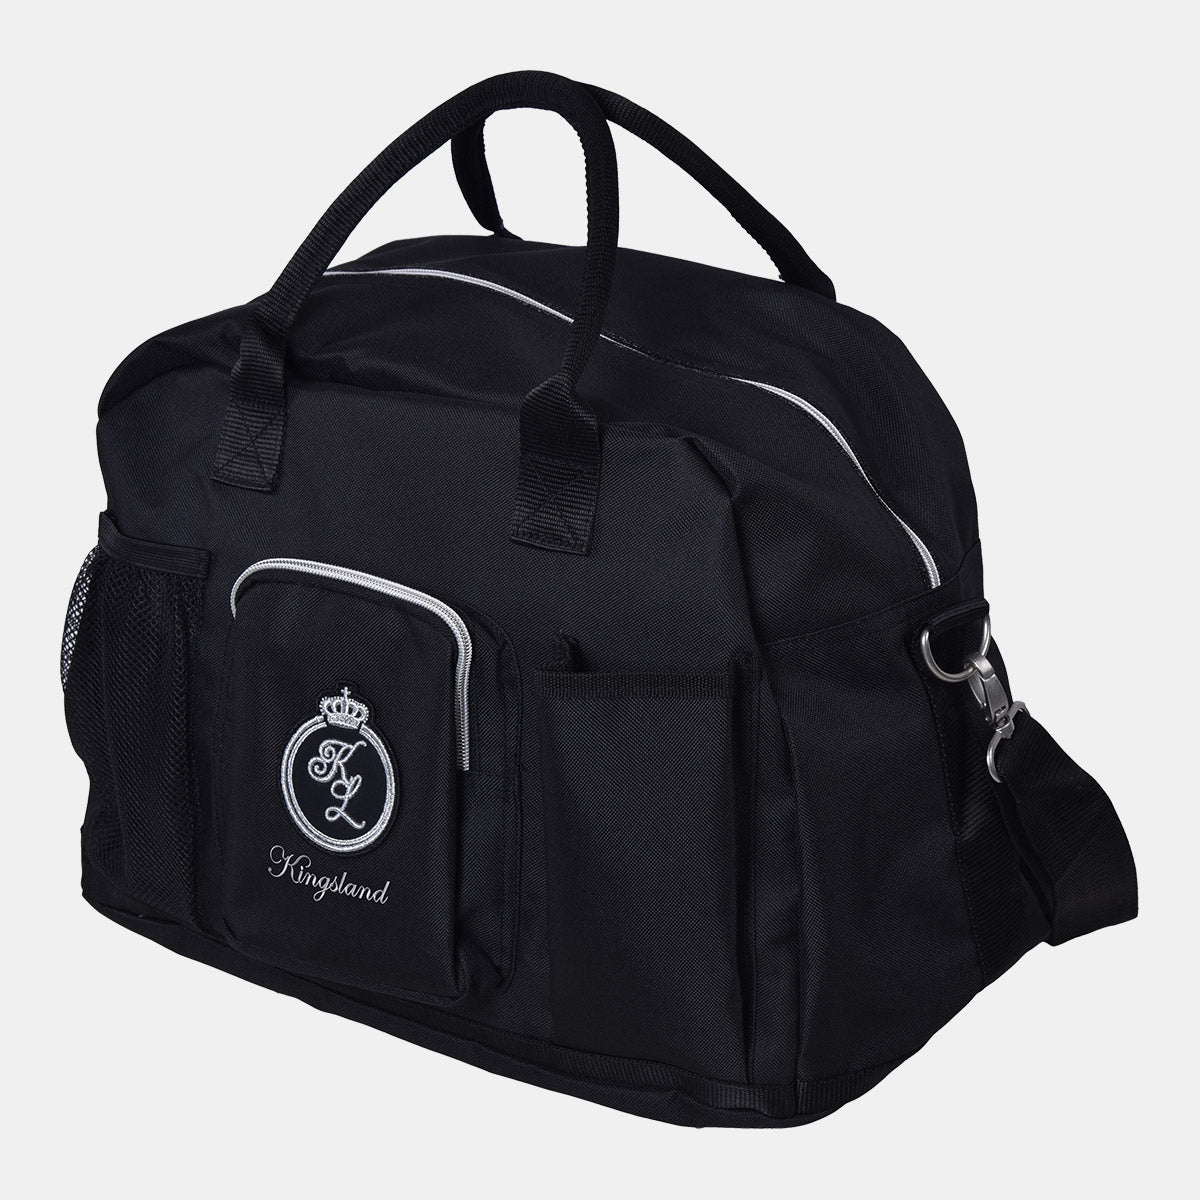 Kingsland La Bouverie Grooms Bag in Black